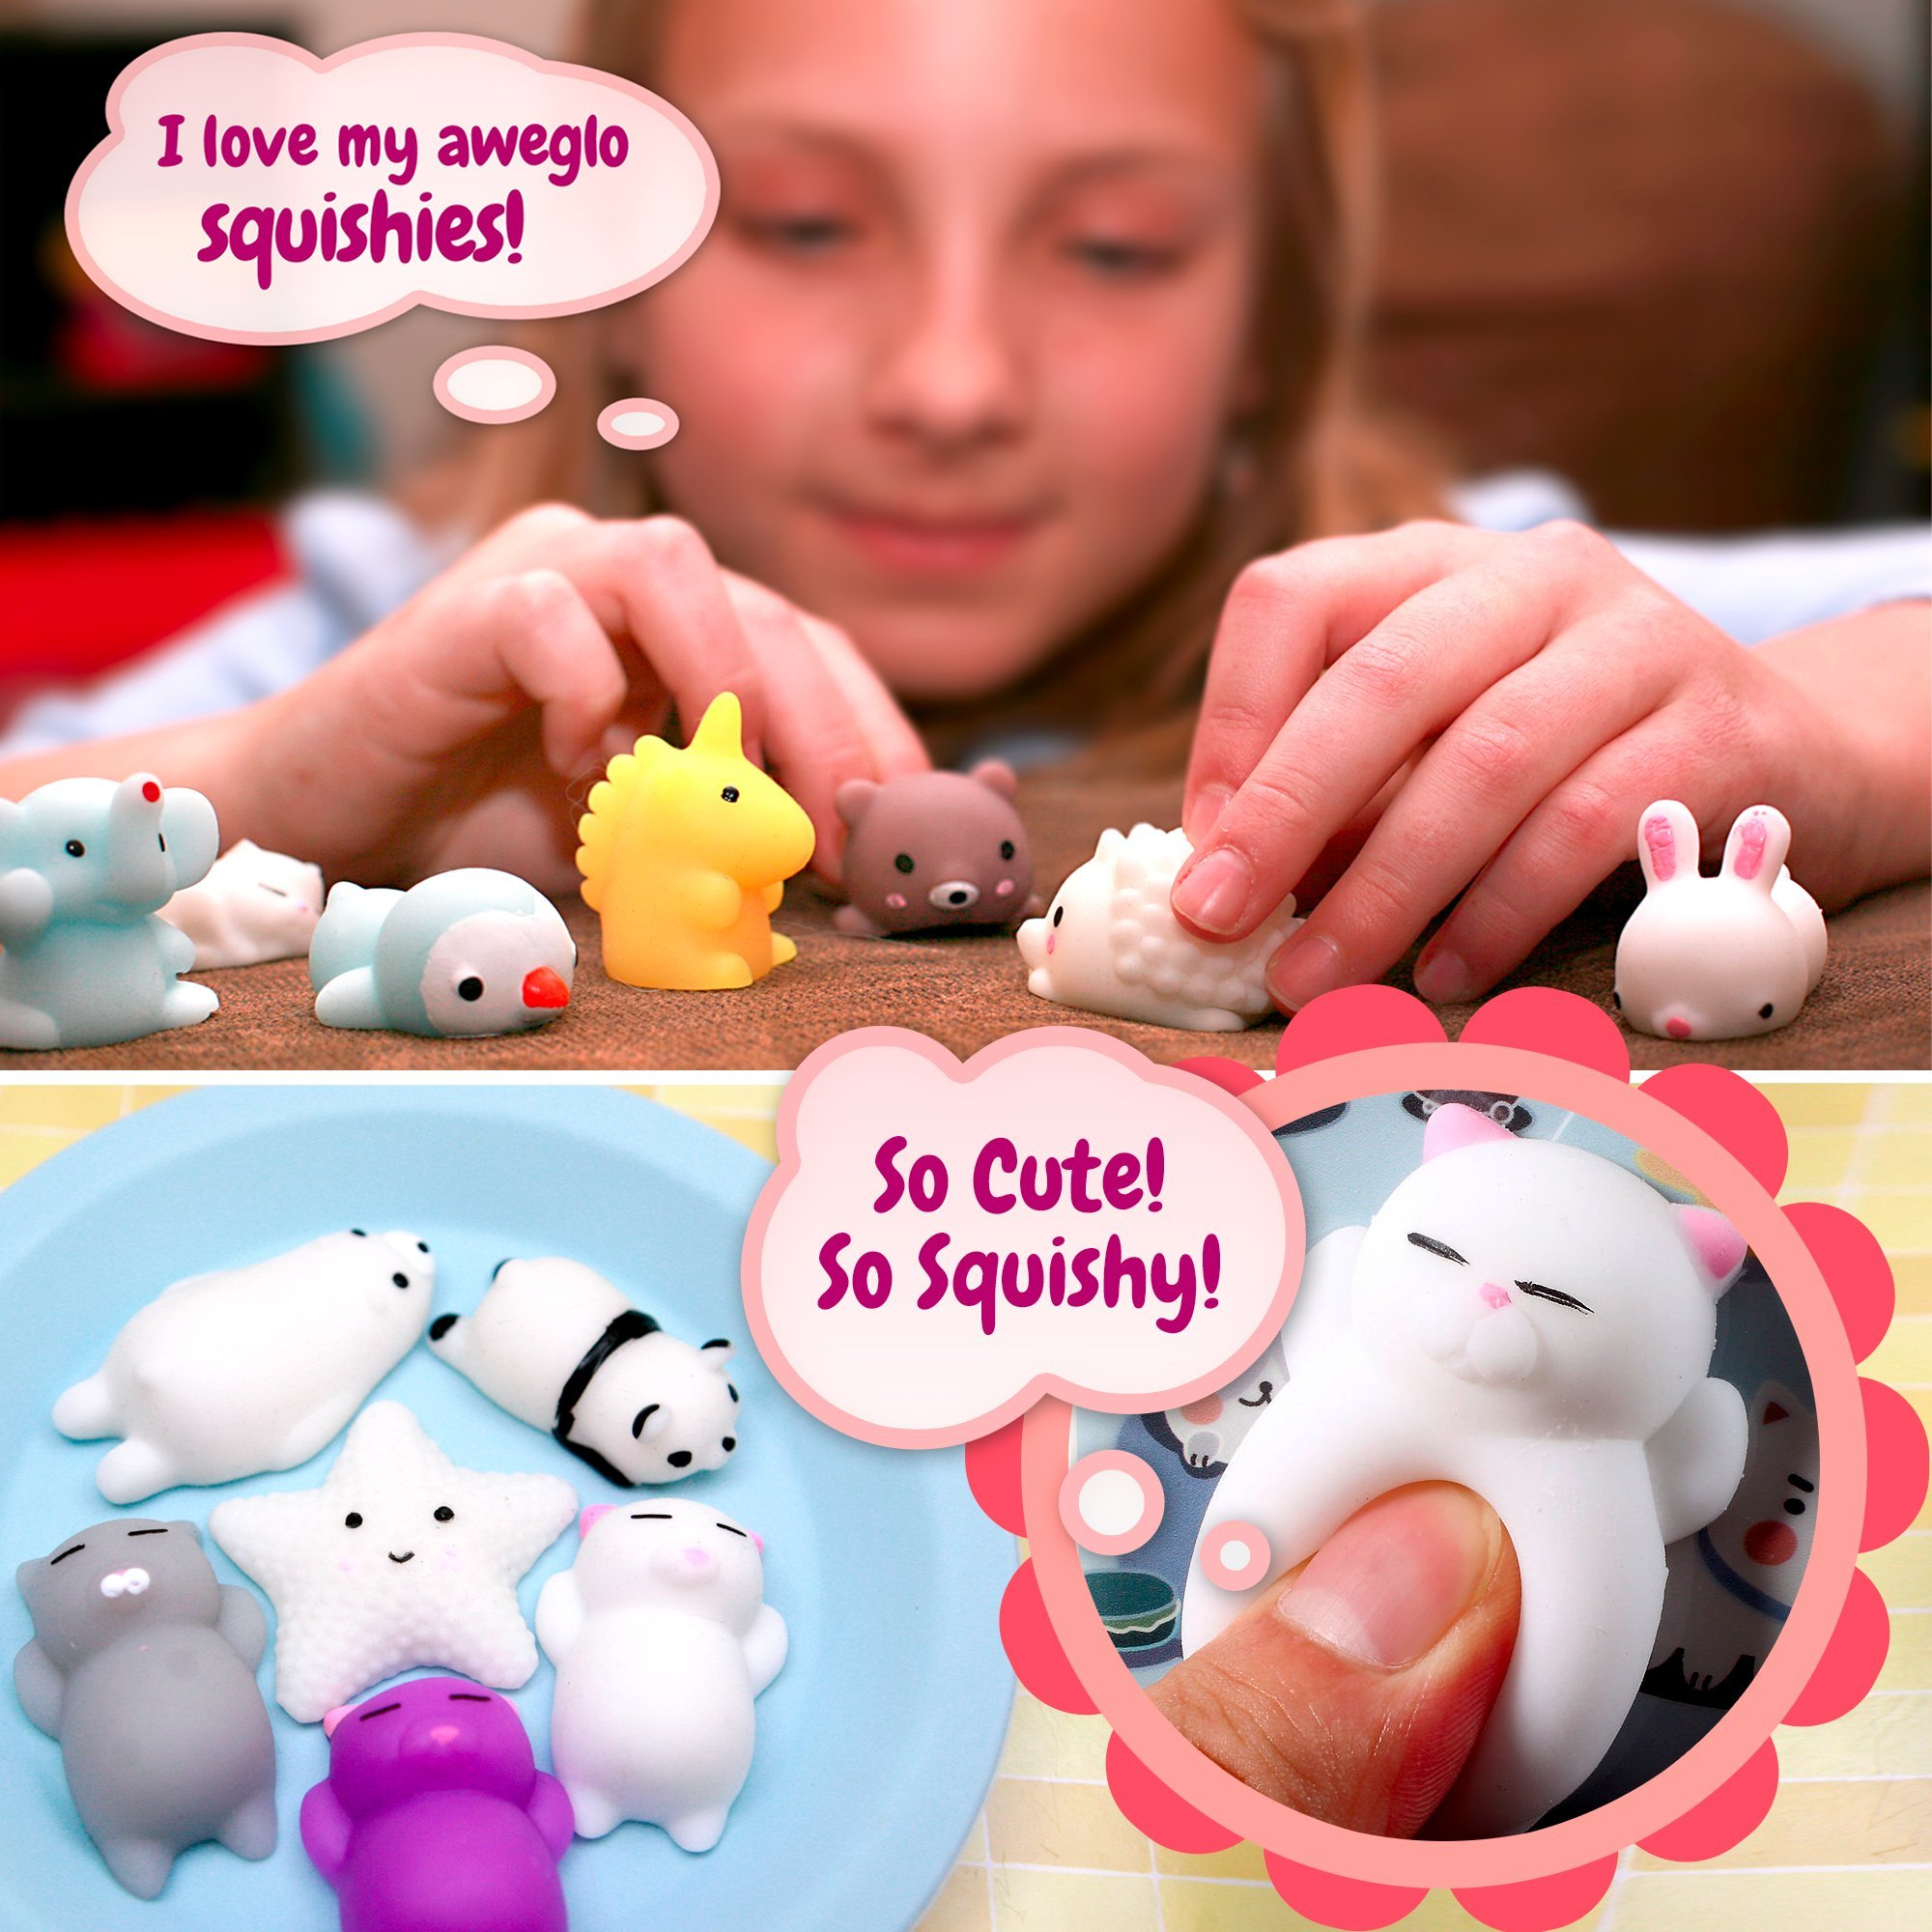 20 Mochi Squishy Toys, FREE CASE, 16 Animals 11 Colors, PARTY FAVORS AWEGLO Prime Silicone Small Mini Squishies Toy Boys Soft Kawaii Squishys Pack Kids Fidget Cat Stress Reliever No Slow Rise Sqishy's by AWEGLO Squishies (Image #4)